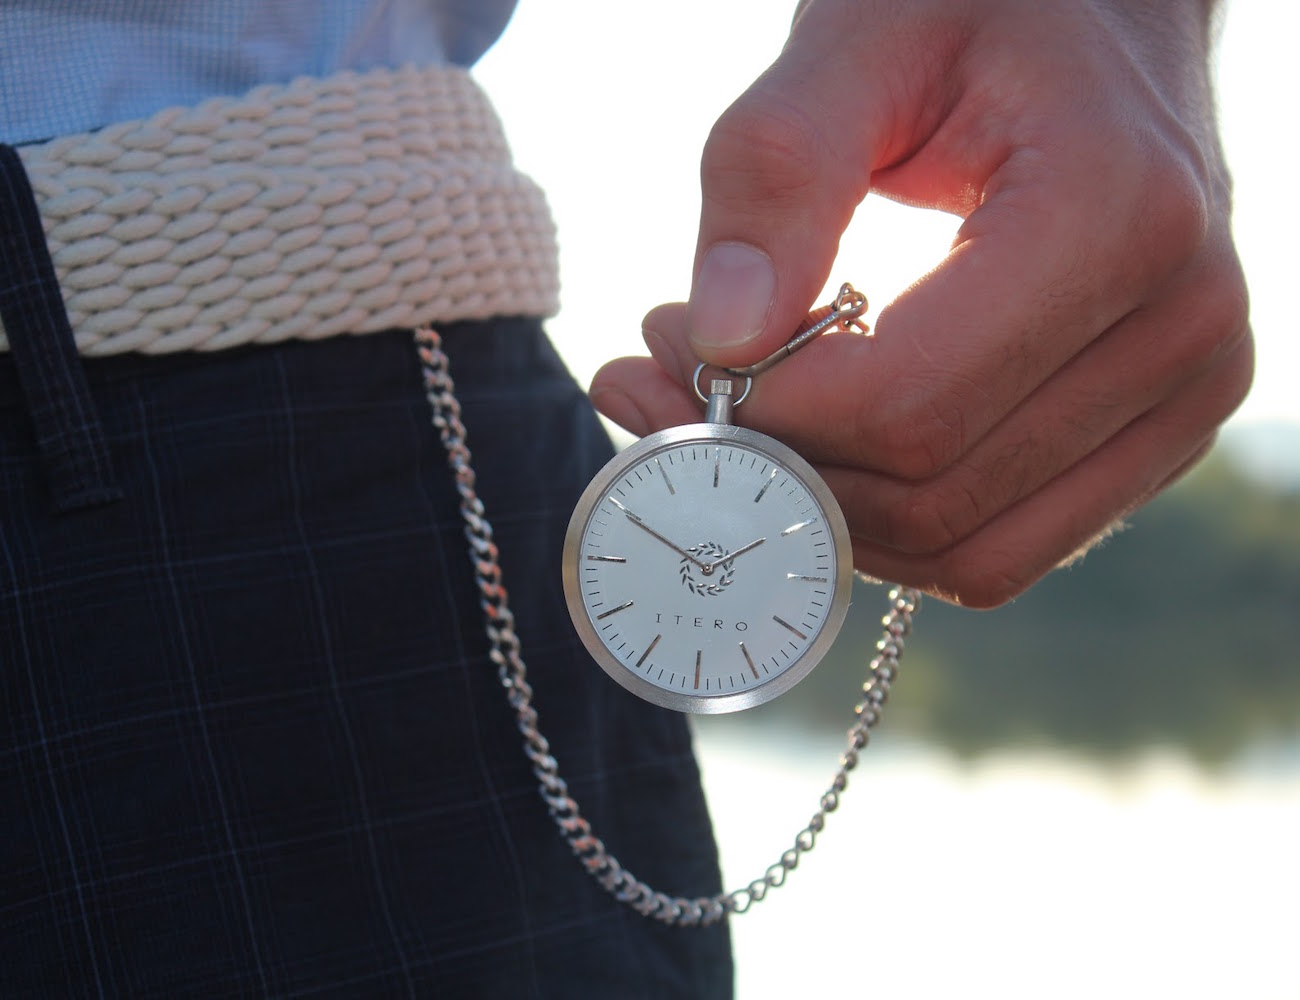 Itero+%26%238211%3B+Pocket+Watches+Are+Back